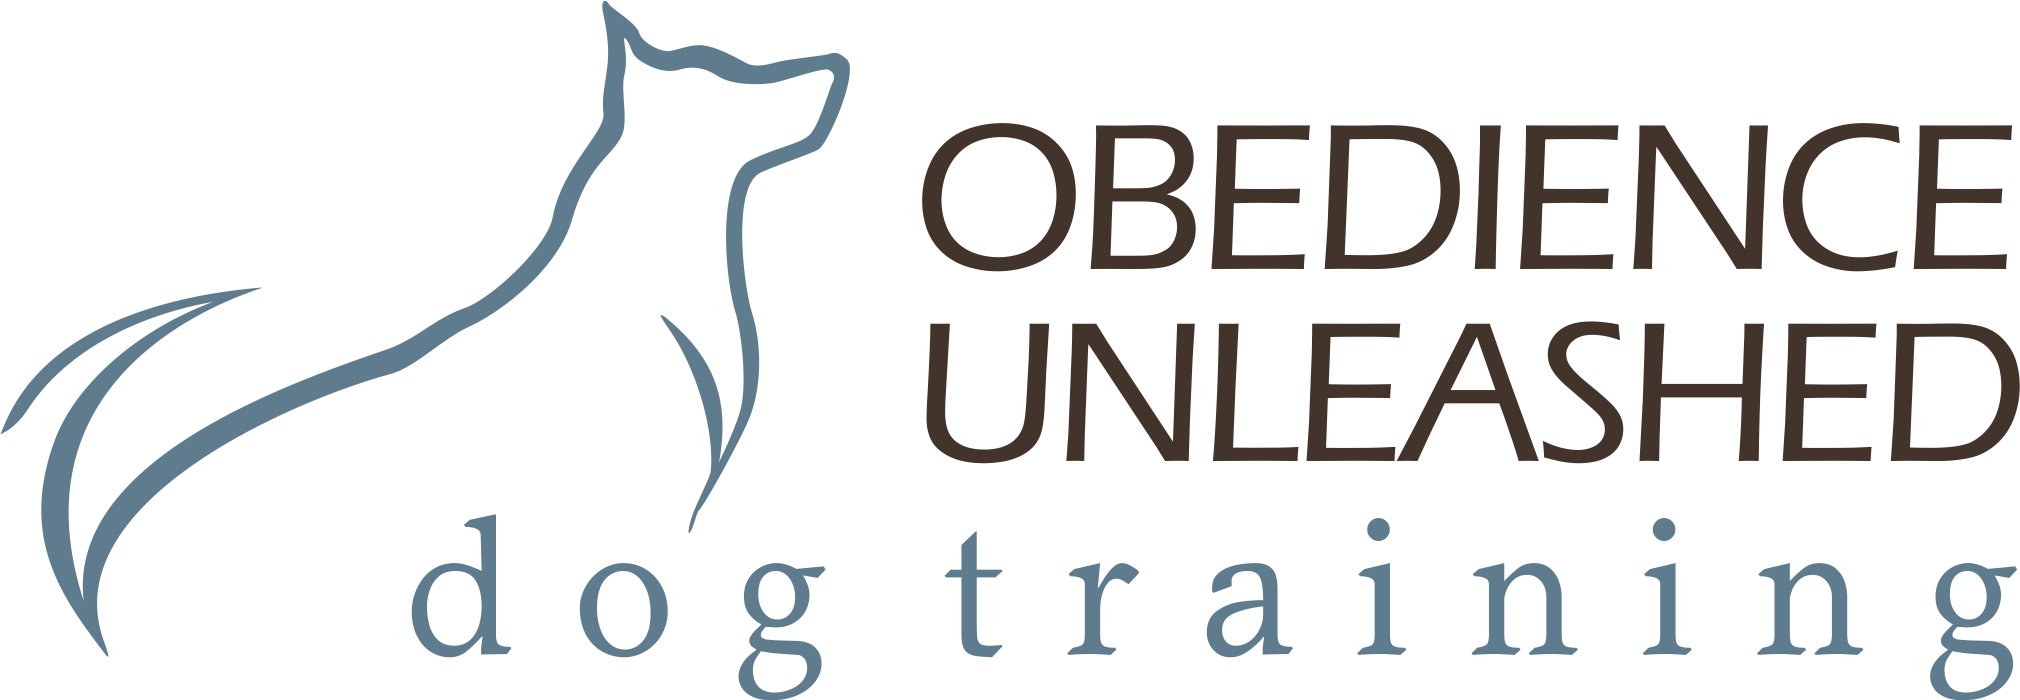 Obedience Unleashed Dog Training Inc.